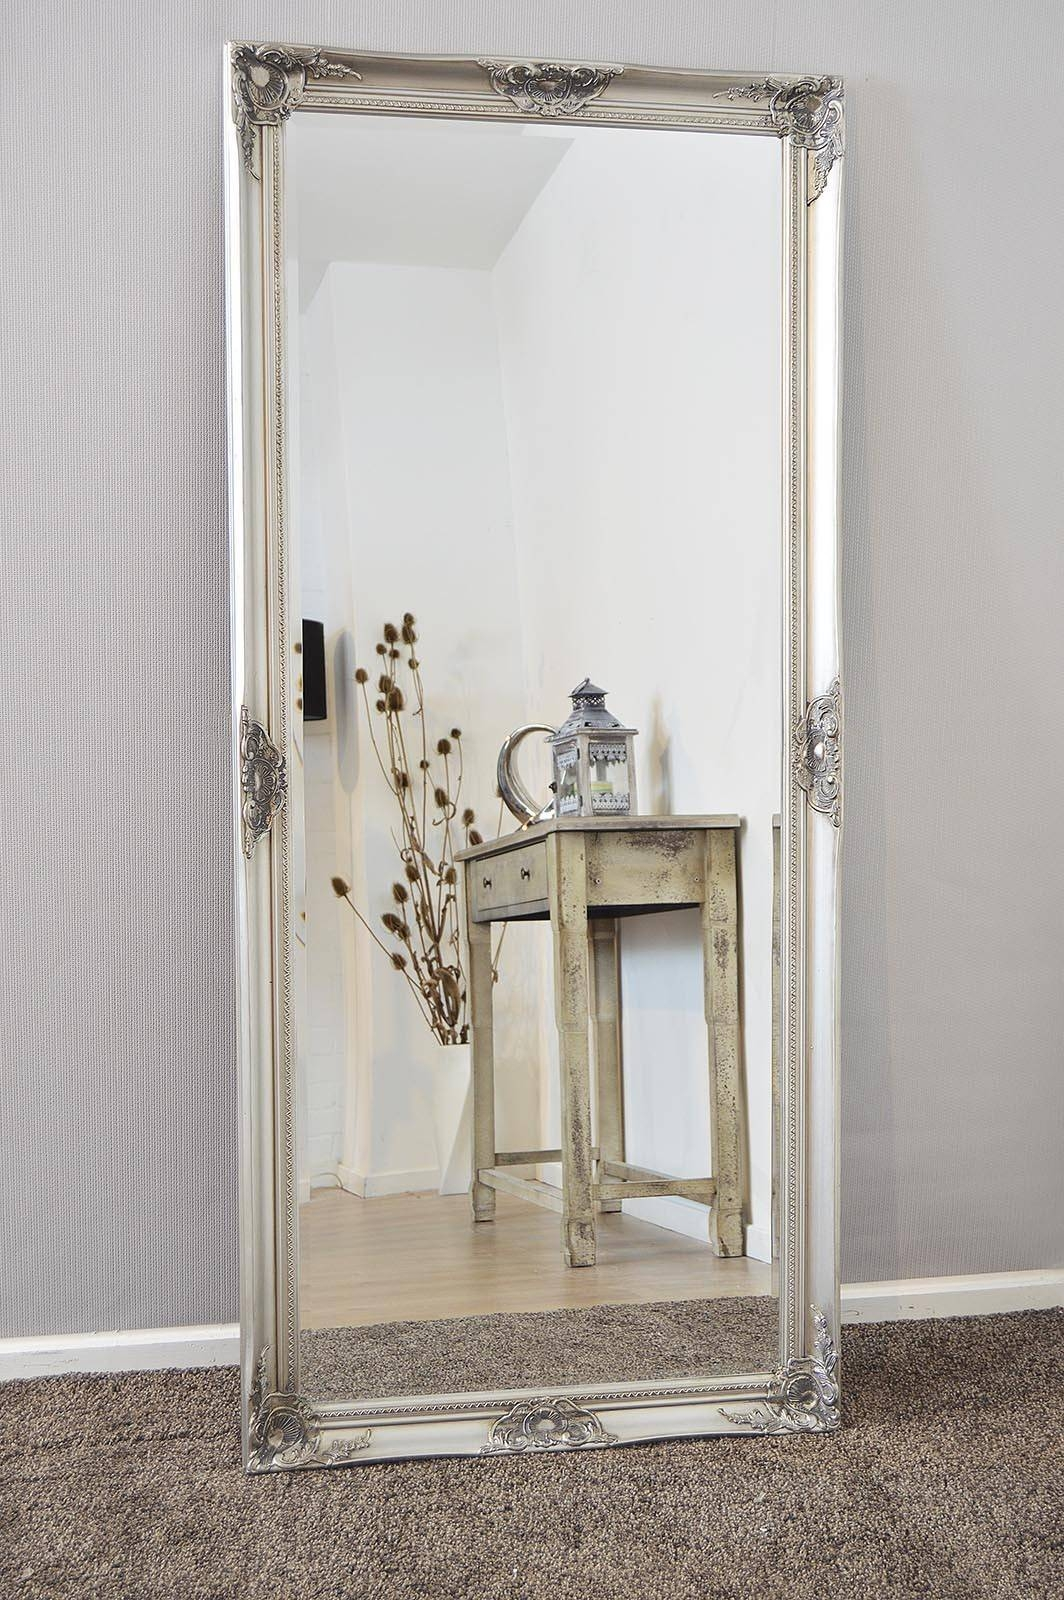 Shabby Chic Wall Mirror 22 Awesome Exterior With Large Silver inside Ornate Large Mirrors (Image 20 of 25)